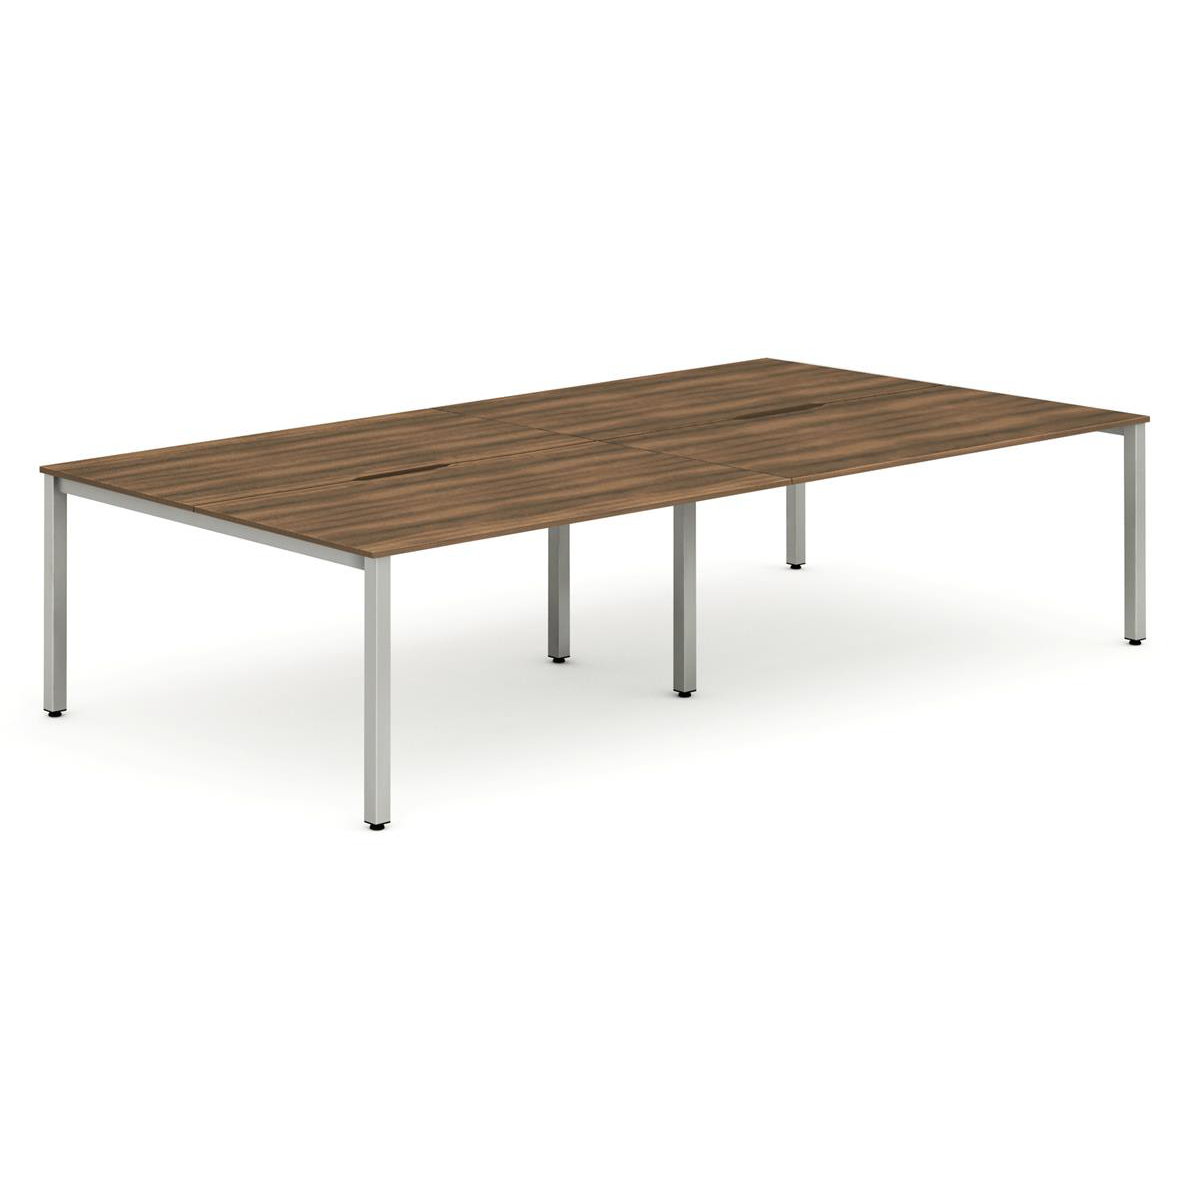 Trexus Bench Desk 4 Person Back to Back Configuration Silver Leg 2400x1600mm Walnut Ref BE259